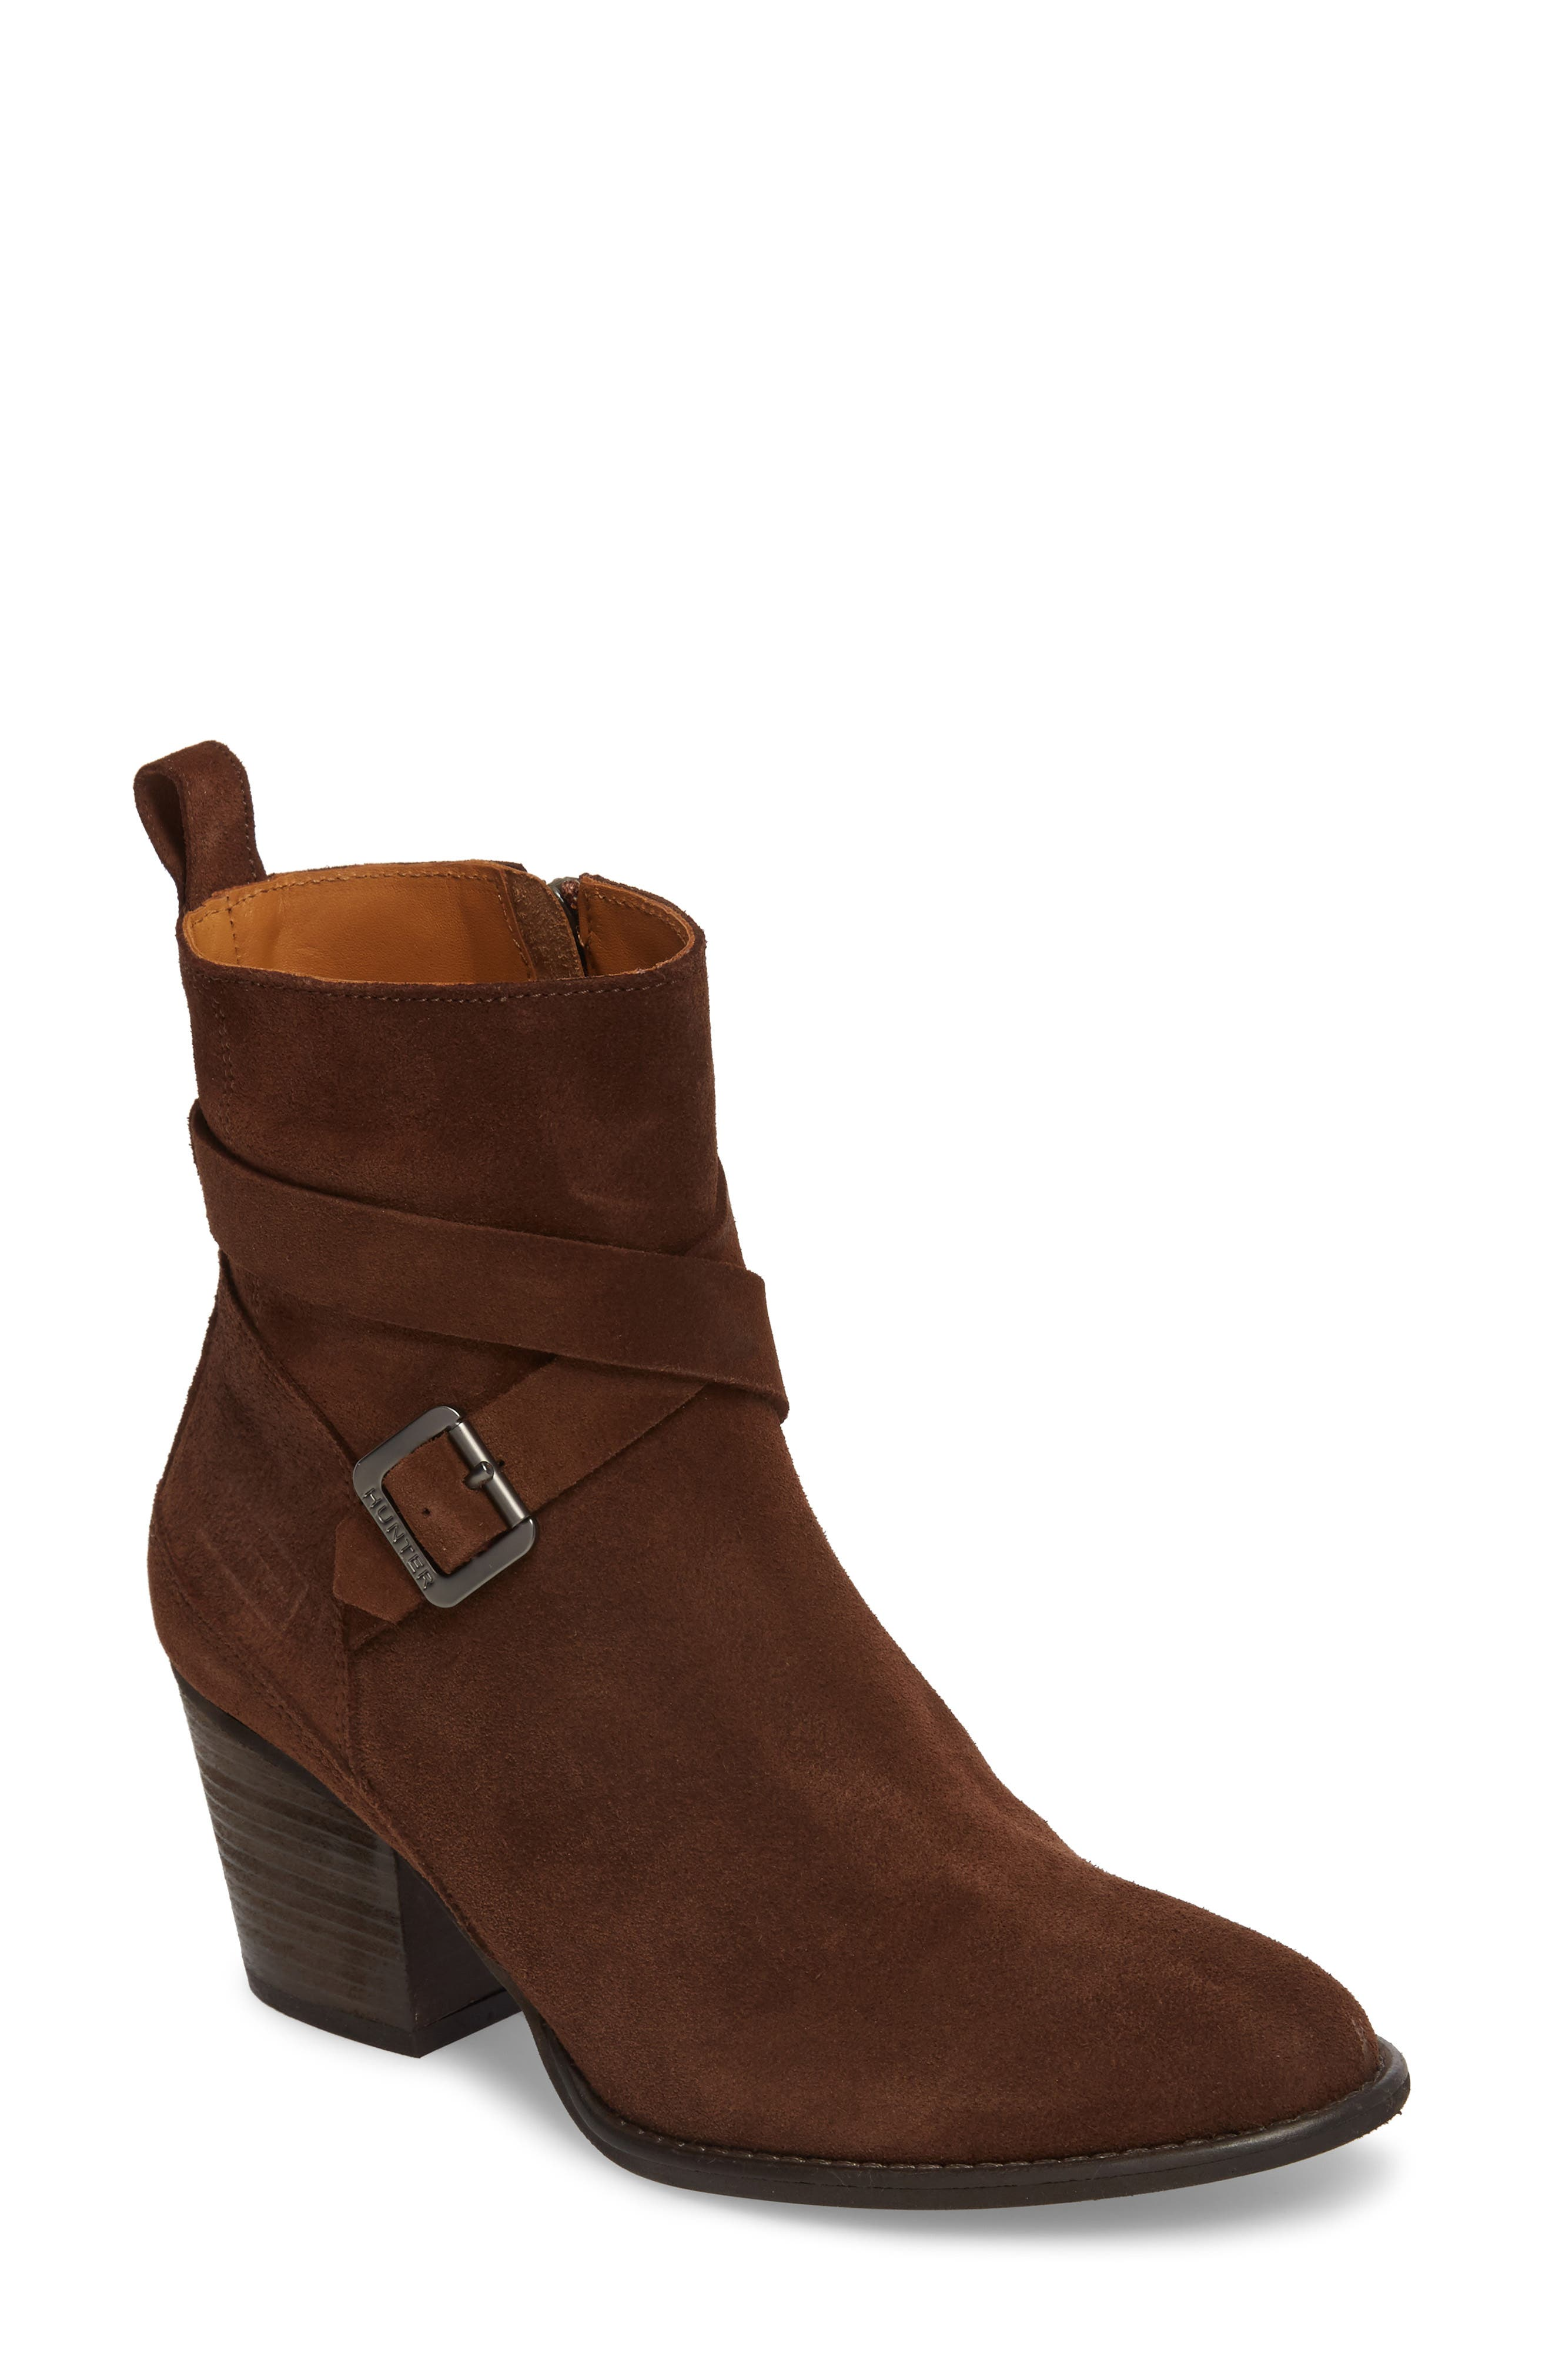 Alternate Image 1 Selected - Hunter Refined Water Resistant Strappy Boot (Women)